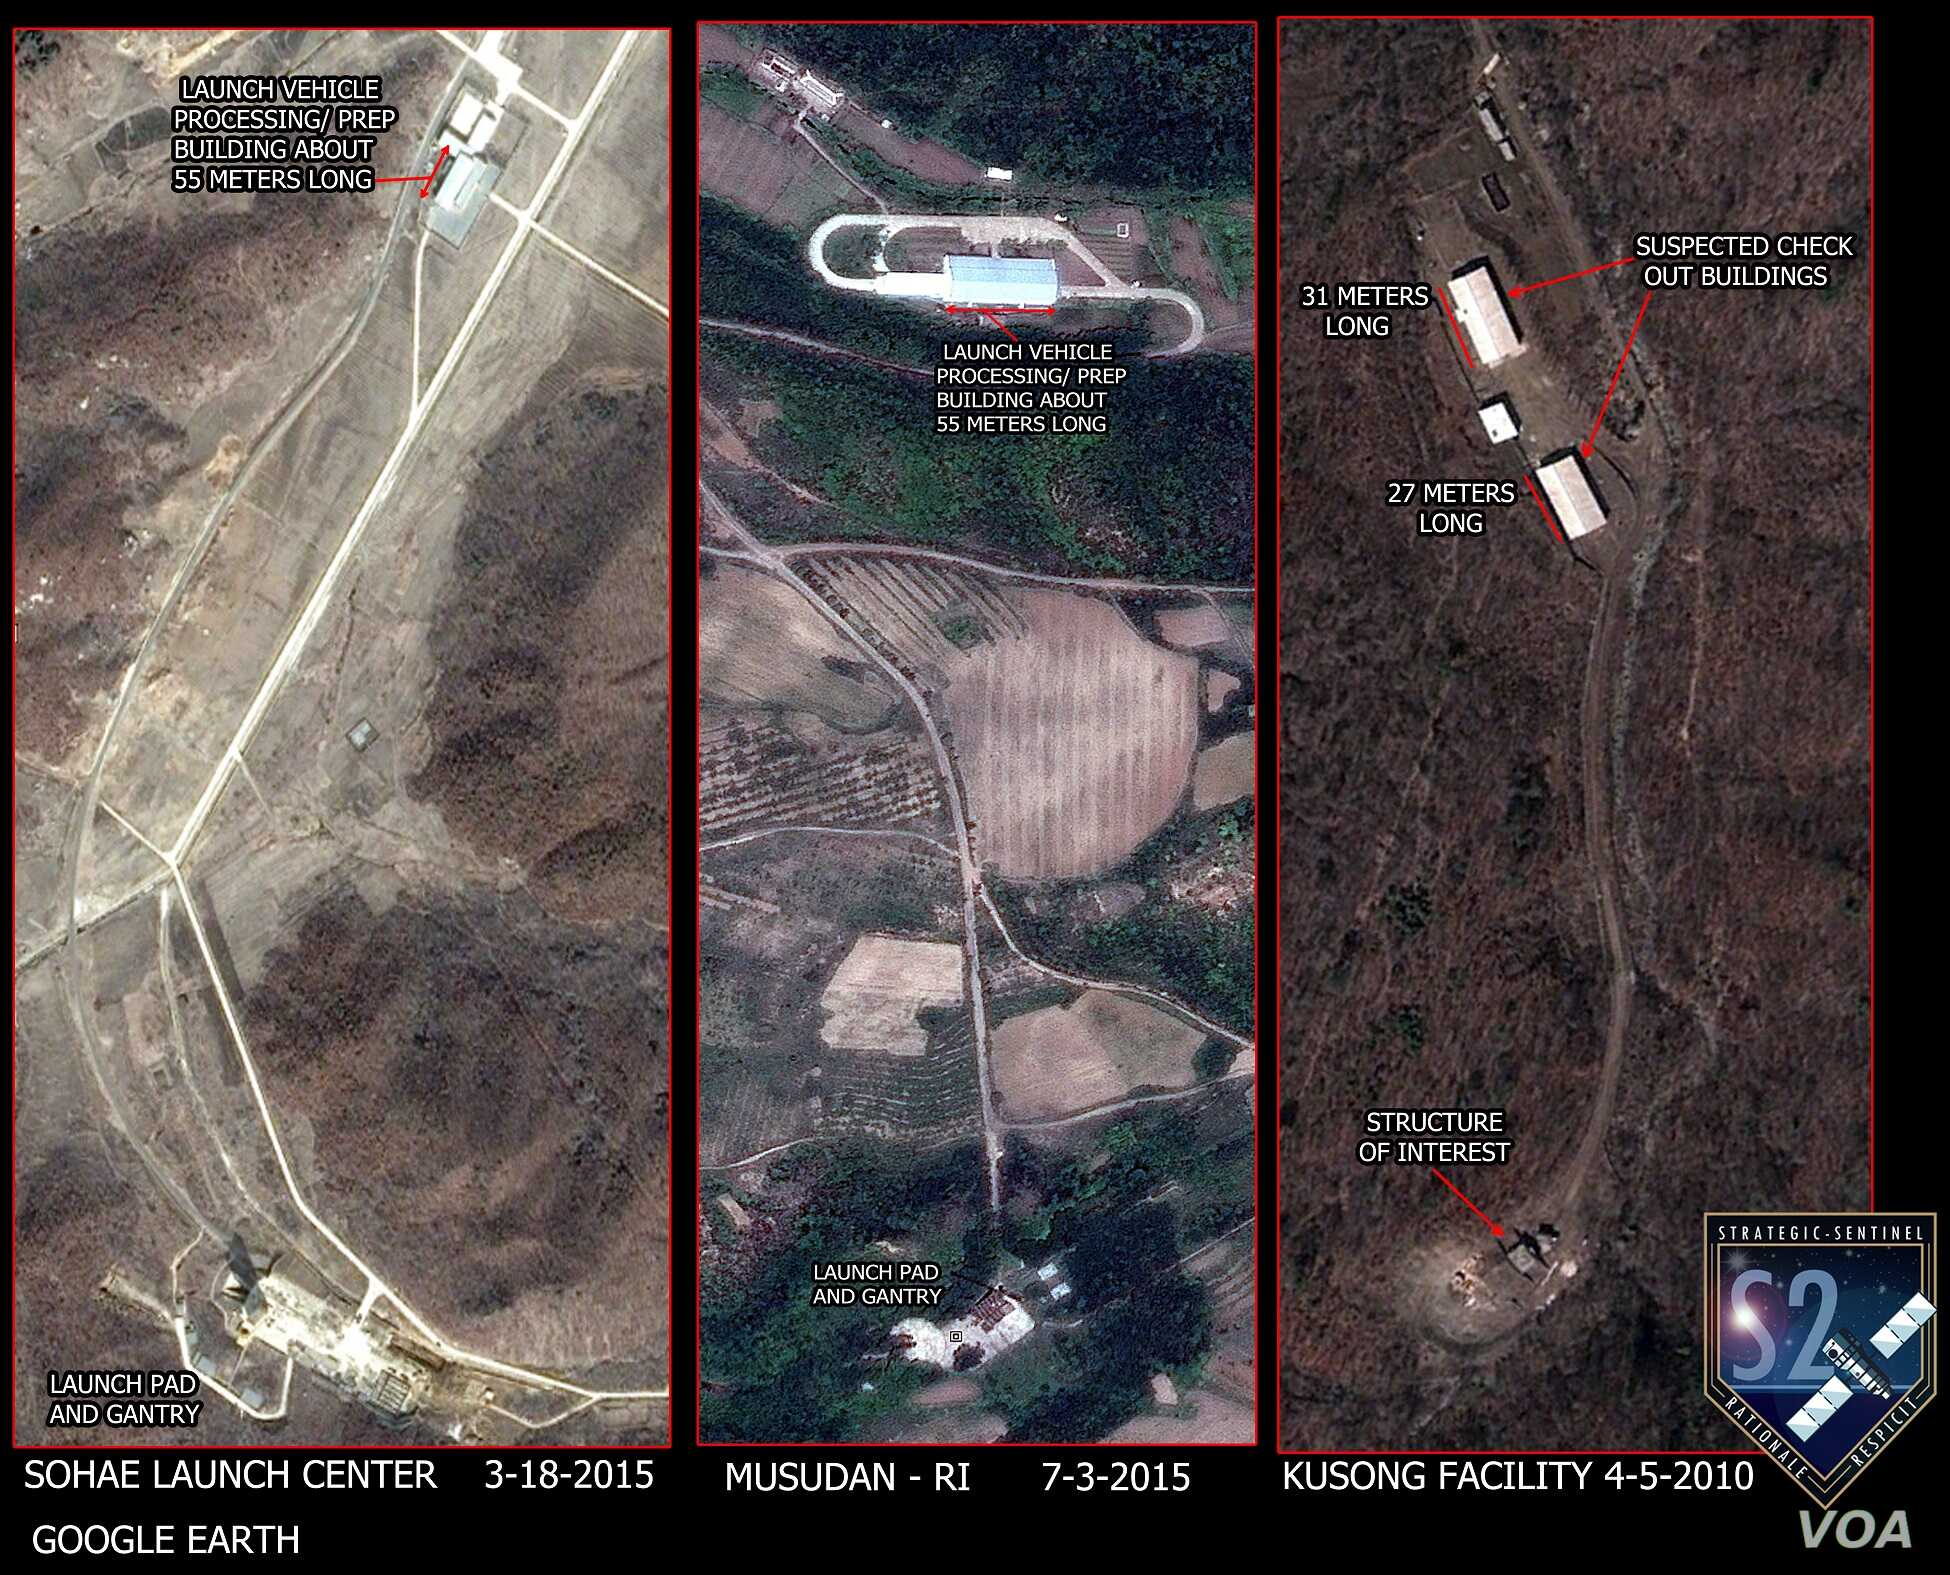 The suspected site in Geunmchang-ri and North Korea's other existing missile launching sites share great similarities, according to Strategic Sentinel. (Strategic Sentinel)